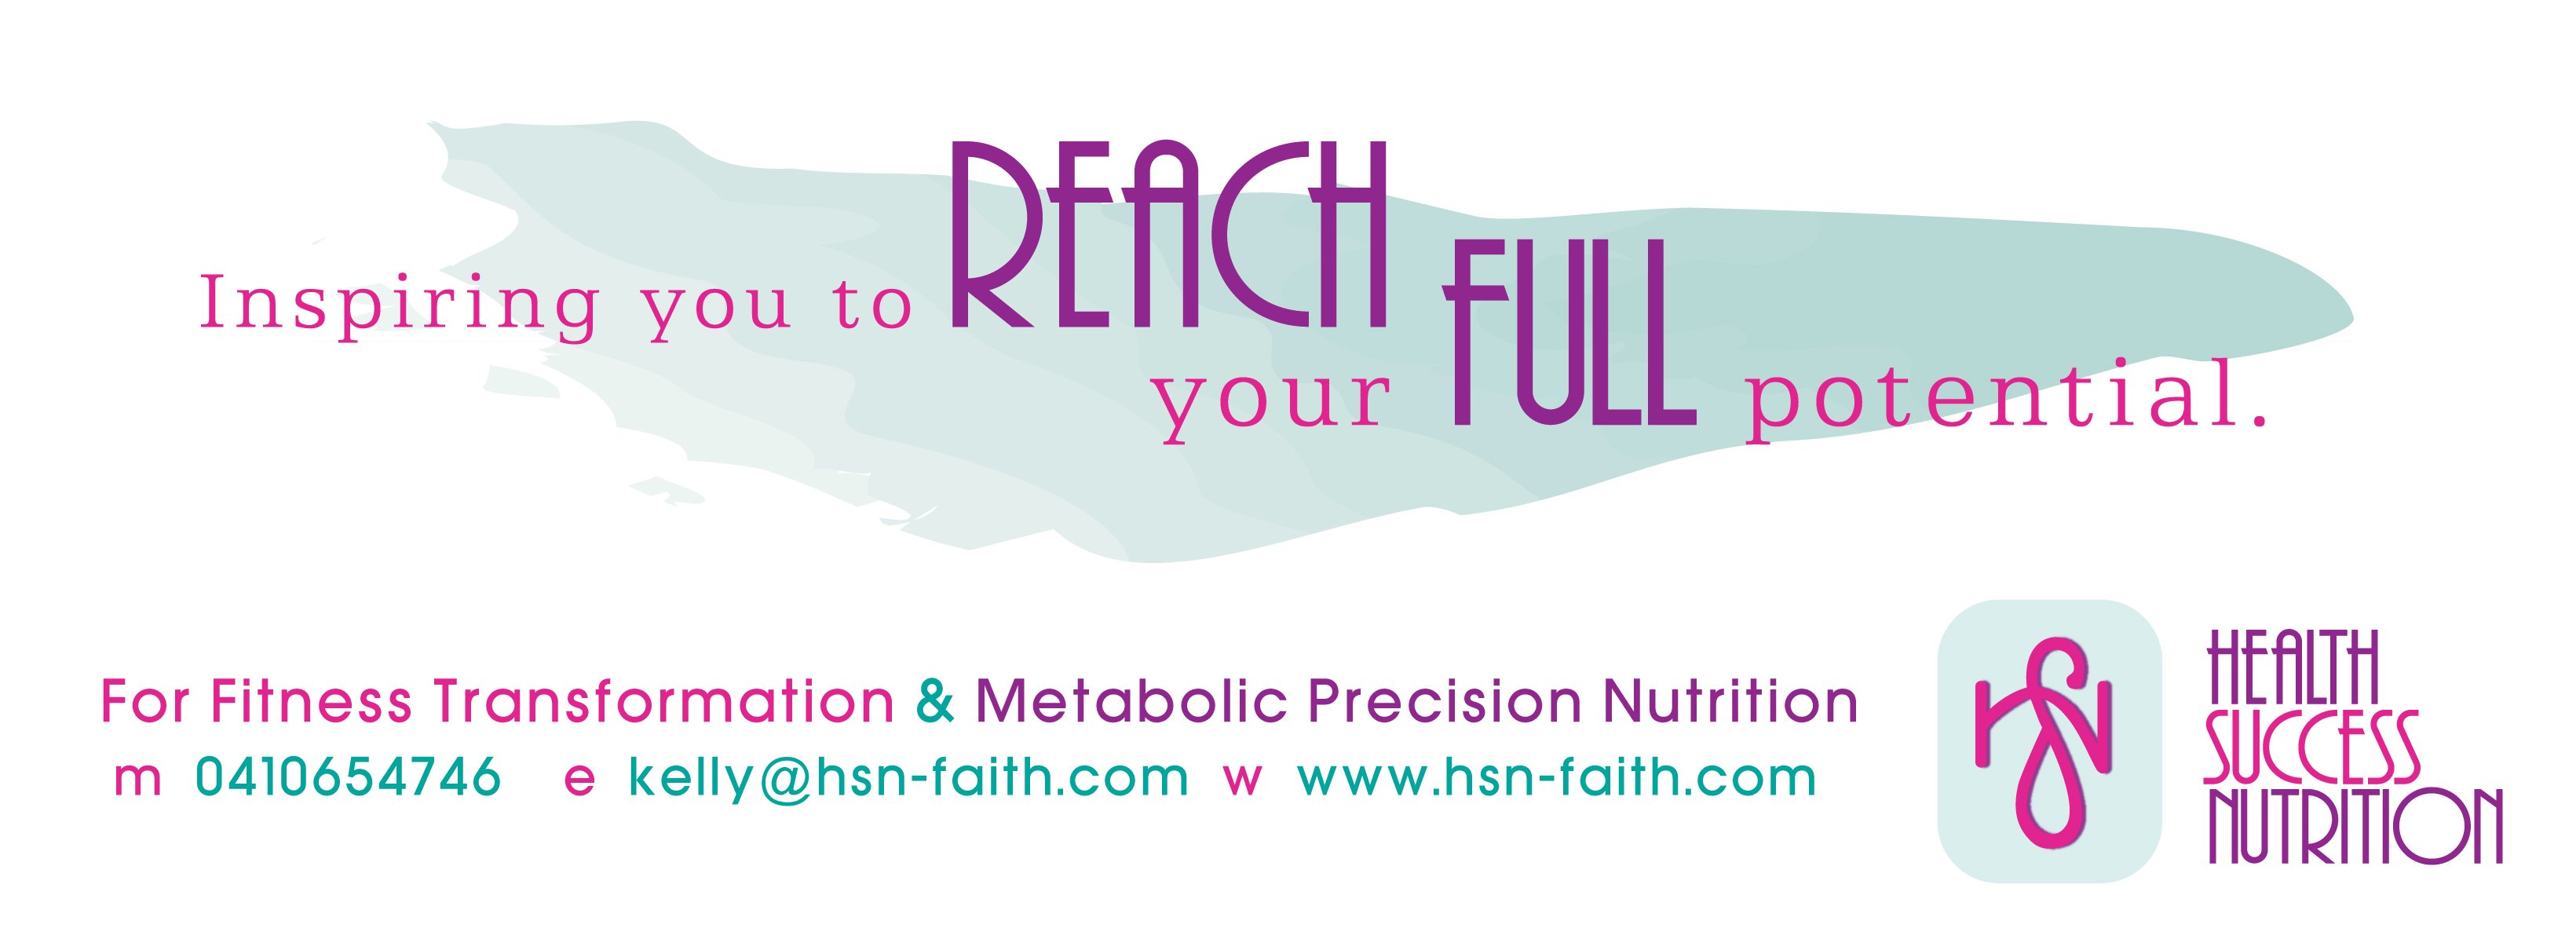 Health Success Nutrition